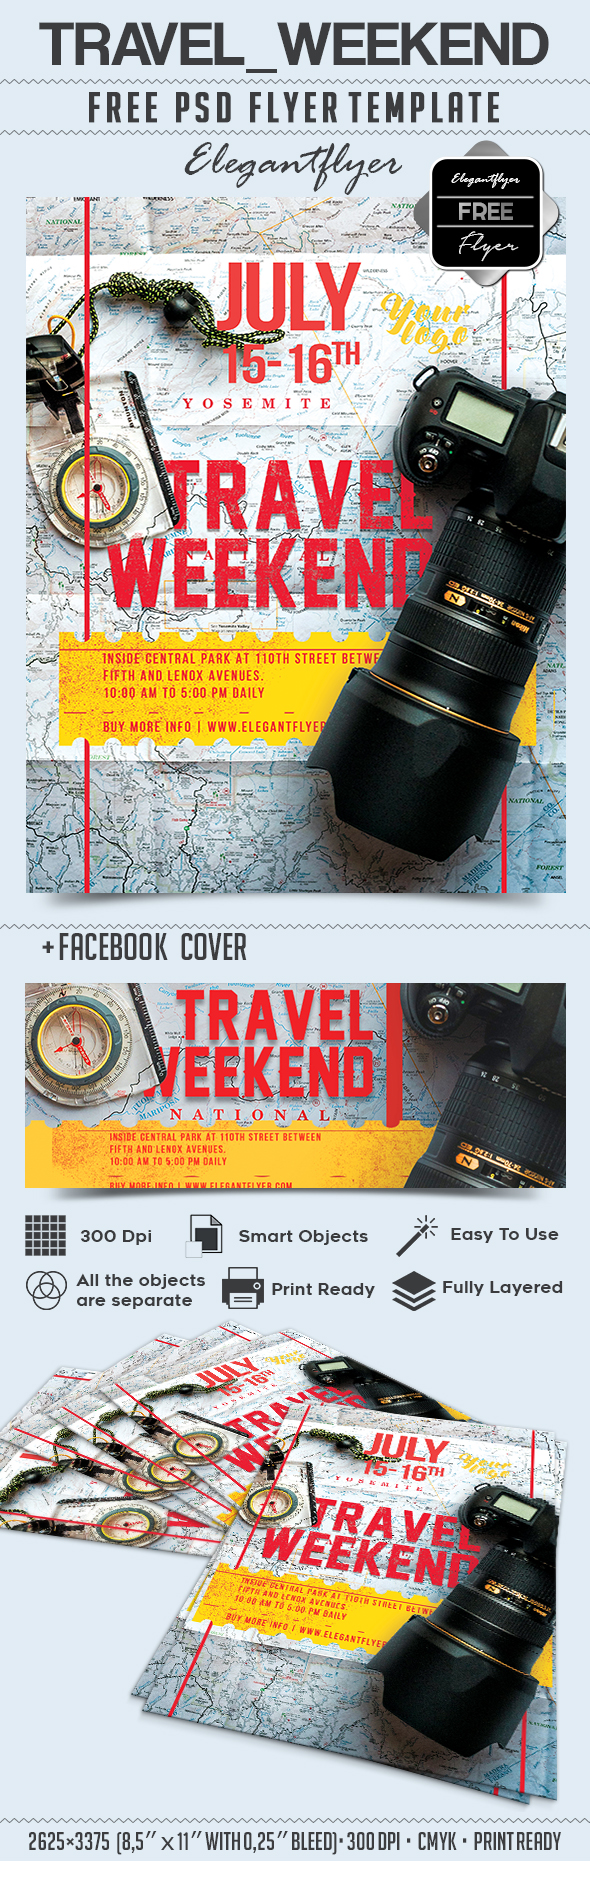 Travel Weekend part 2 – Free Flyer PSD Template